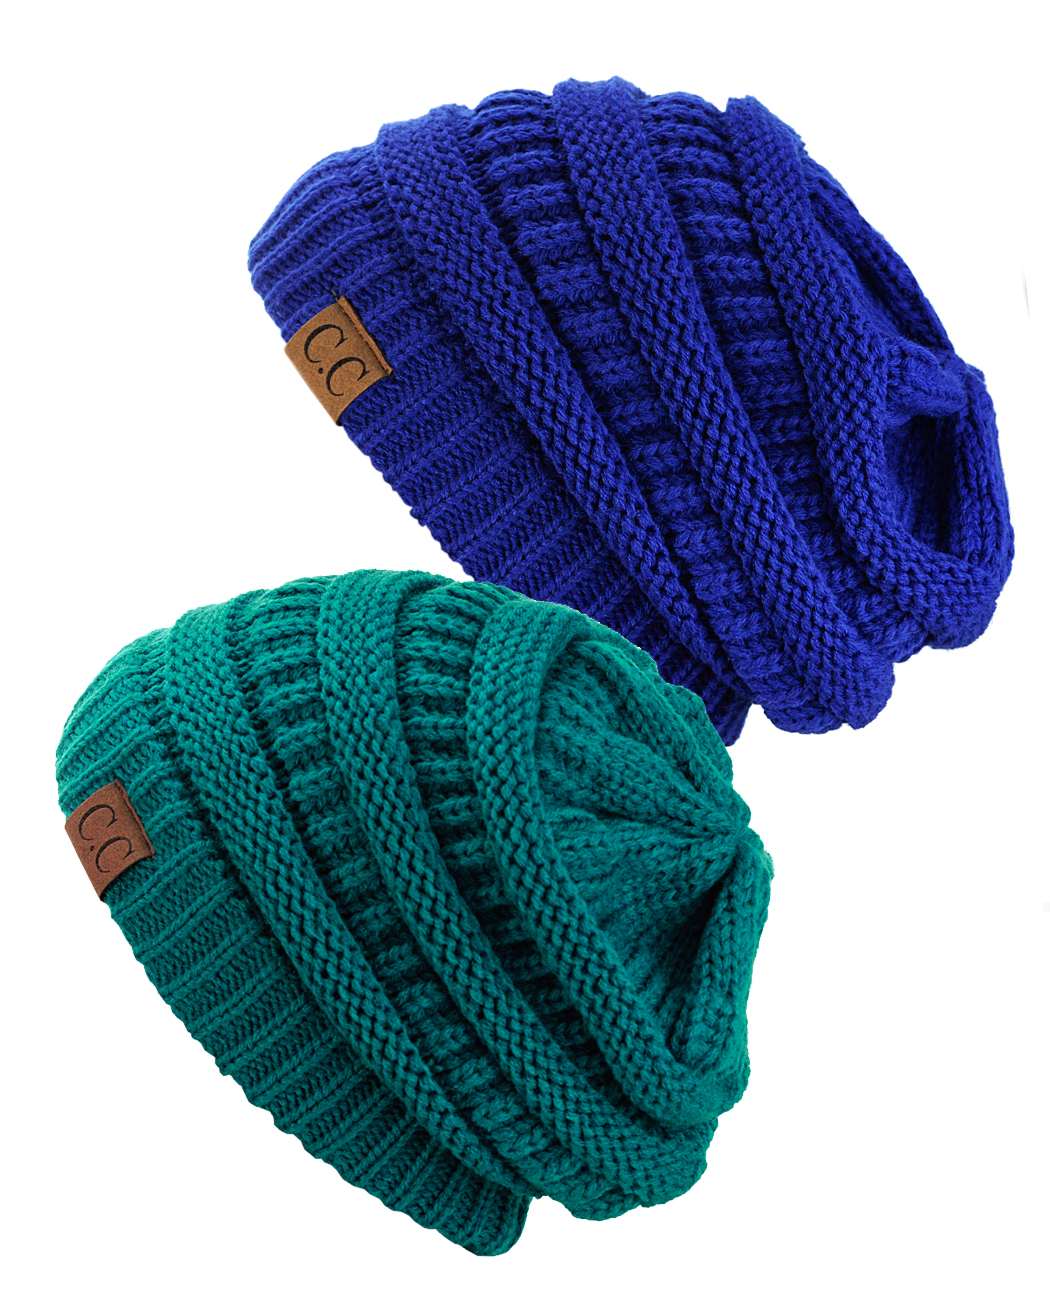 C.C Trendy Warm Chunky Soft Stretch Cable Knit Beanie Skully, 2 Pack Teal/Royal